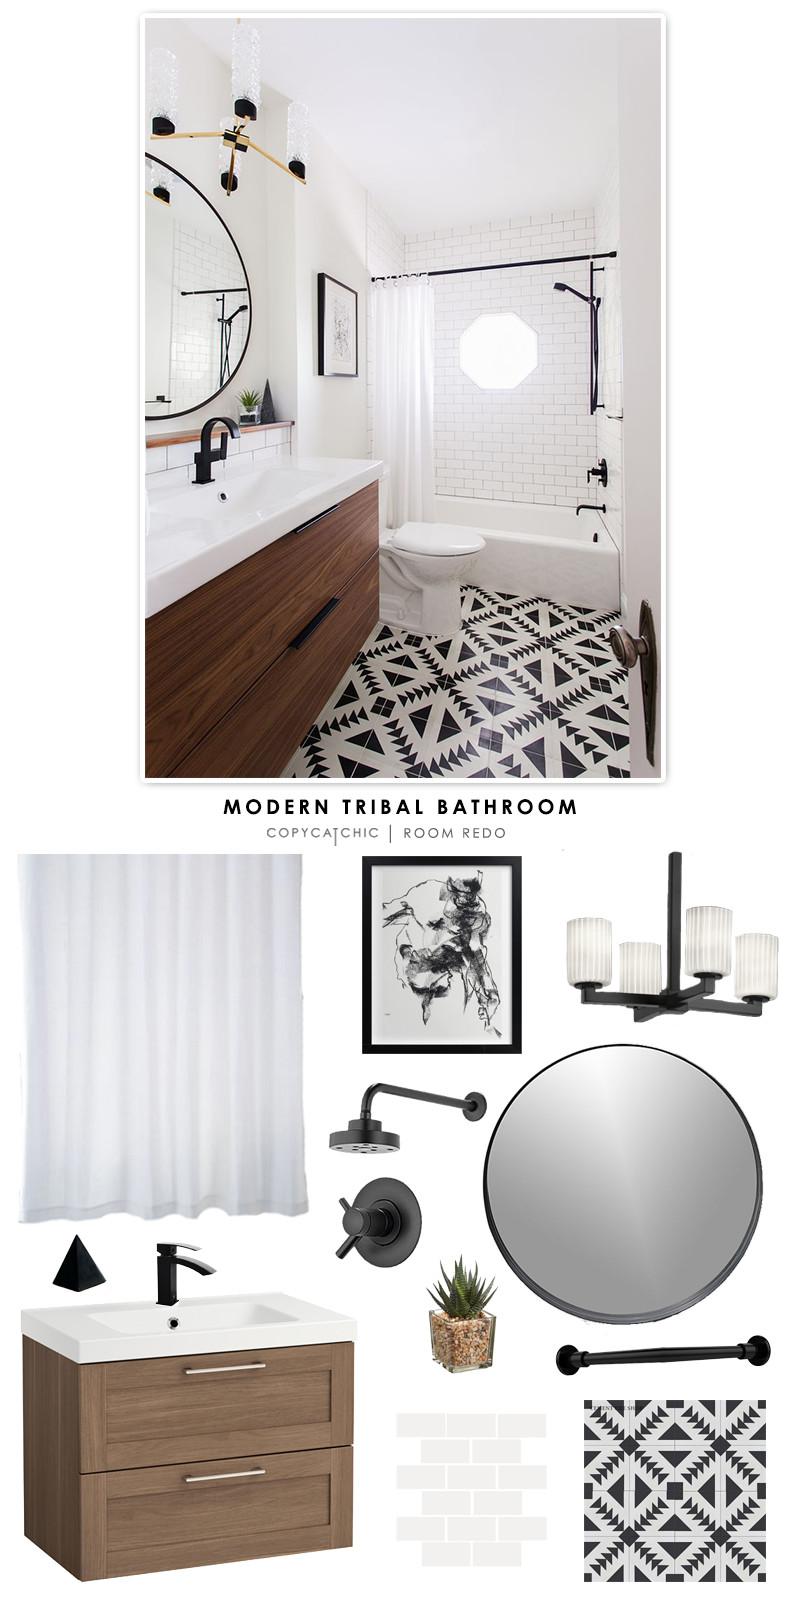 Copy Cat Chic Room Redo Modern Tribal Bathroom Copycatchic